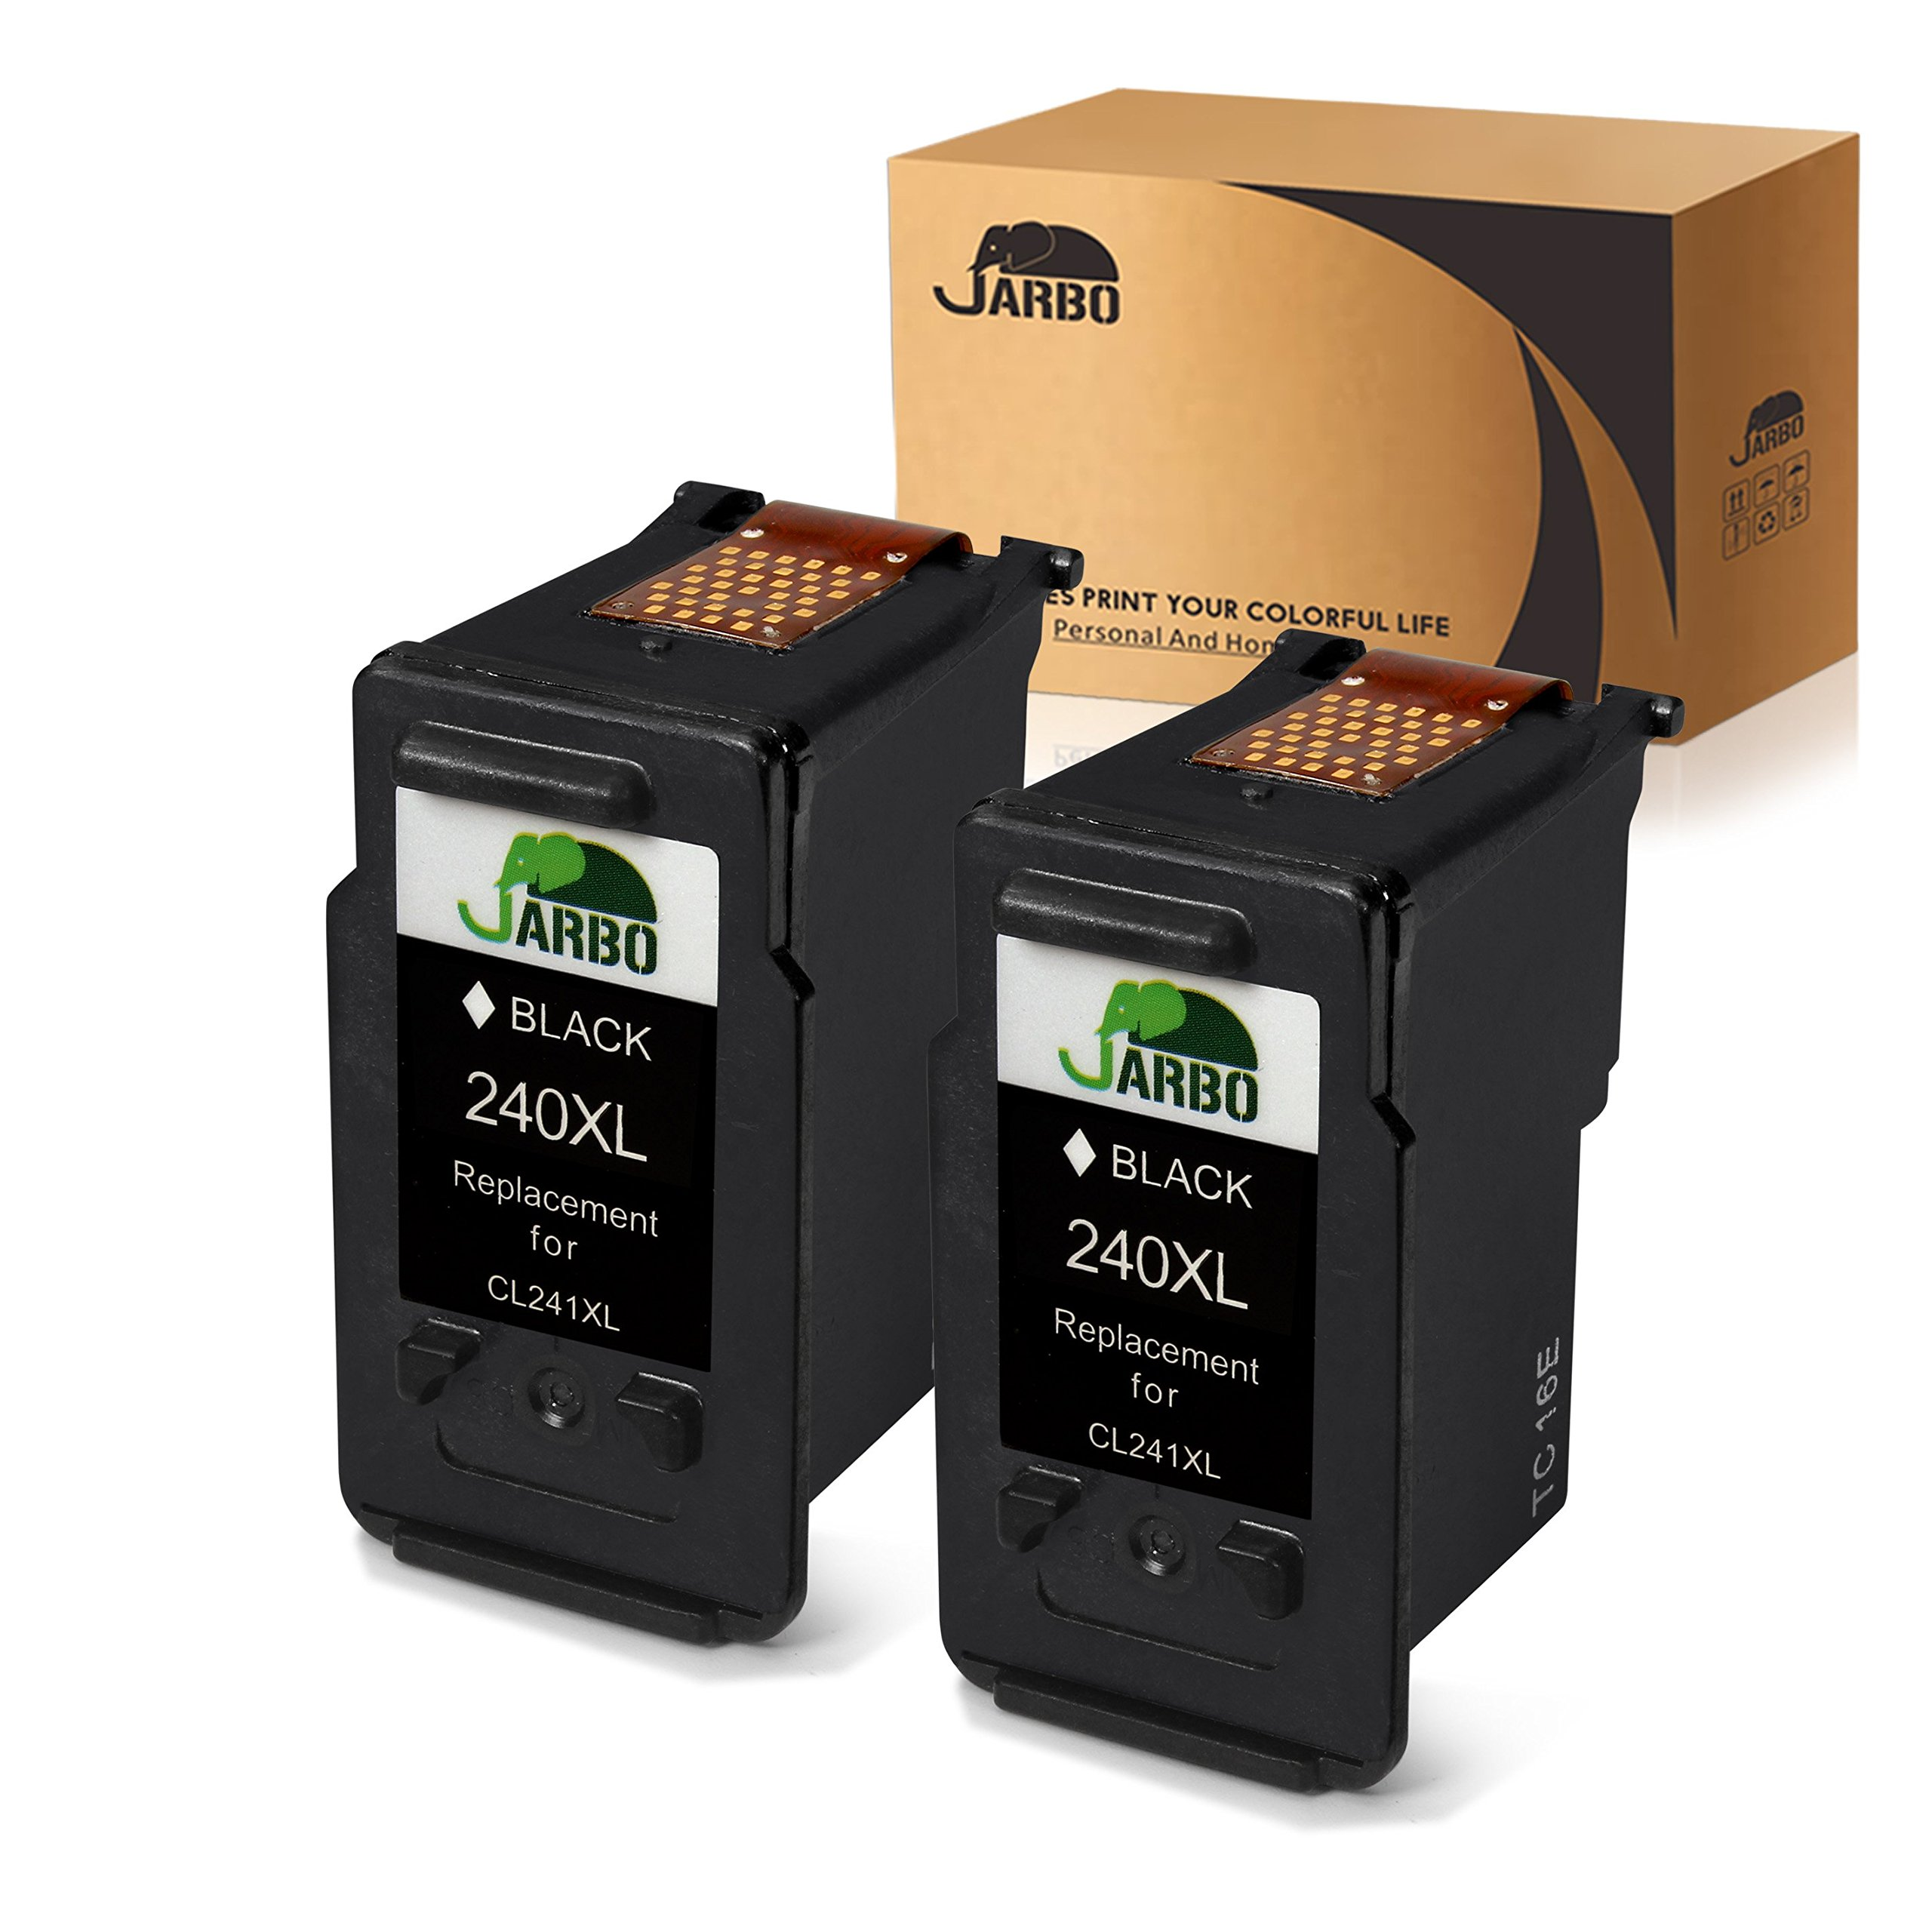 JARBO Remanufactured for Canon PG-240XL Ink Cartridge High Yield, 2 Black, Compatible for Canon PIXMA MG3520 MG3620 MG2220 MG3220 MG3522 MG3222 MG2120 MG4120 MX472 MX452 MX522 MX532 MX392 MX432 MX512